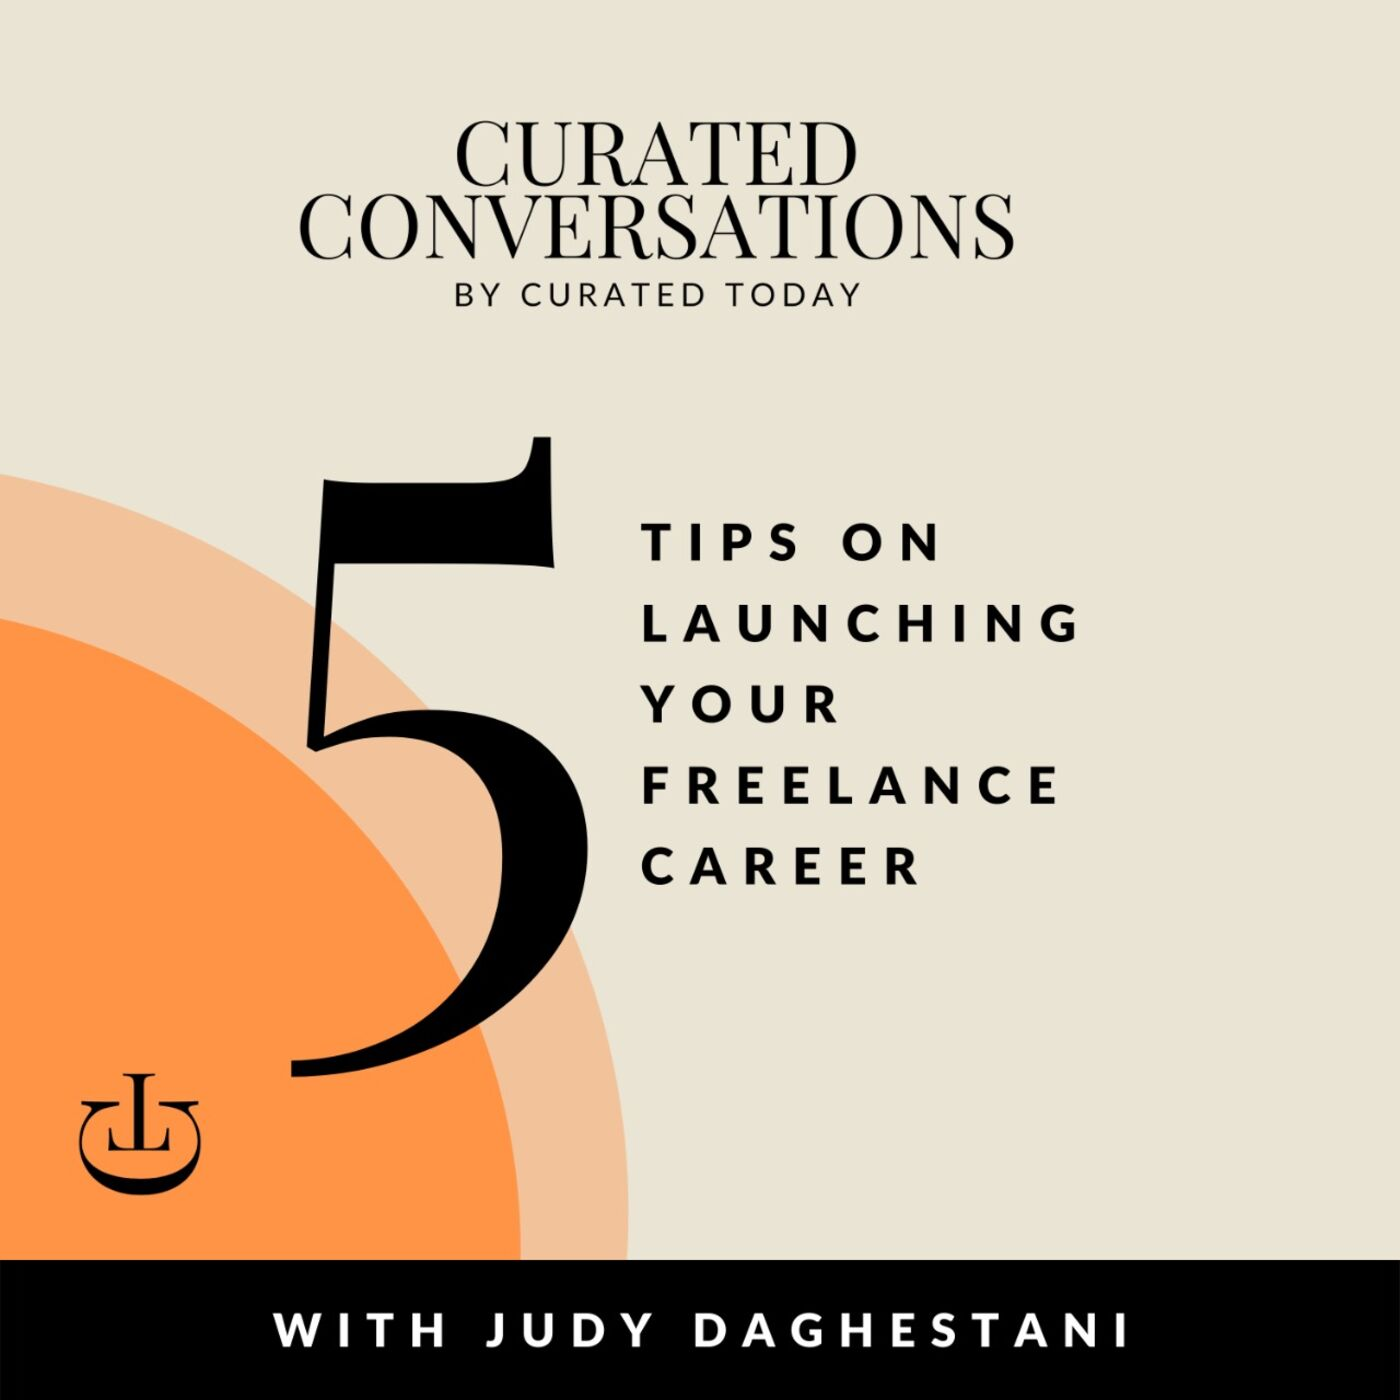 5 Tips On Launching Your Freelance Career - With Judy Daghestani, Founder of Curated Today